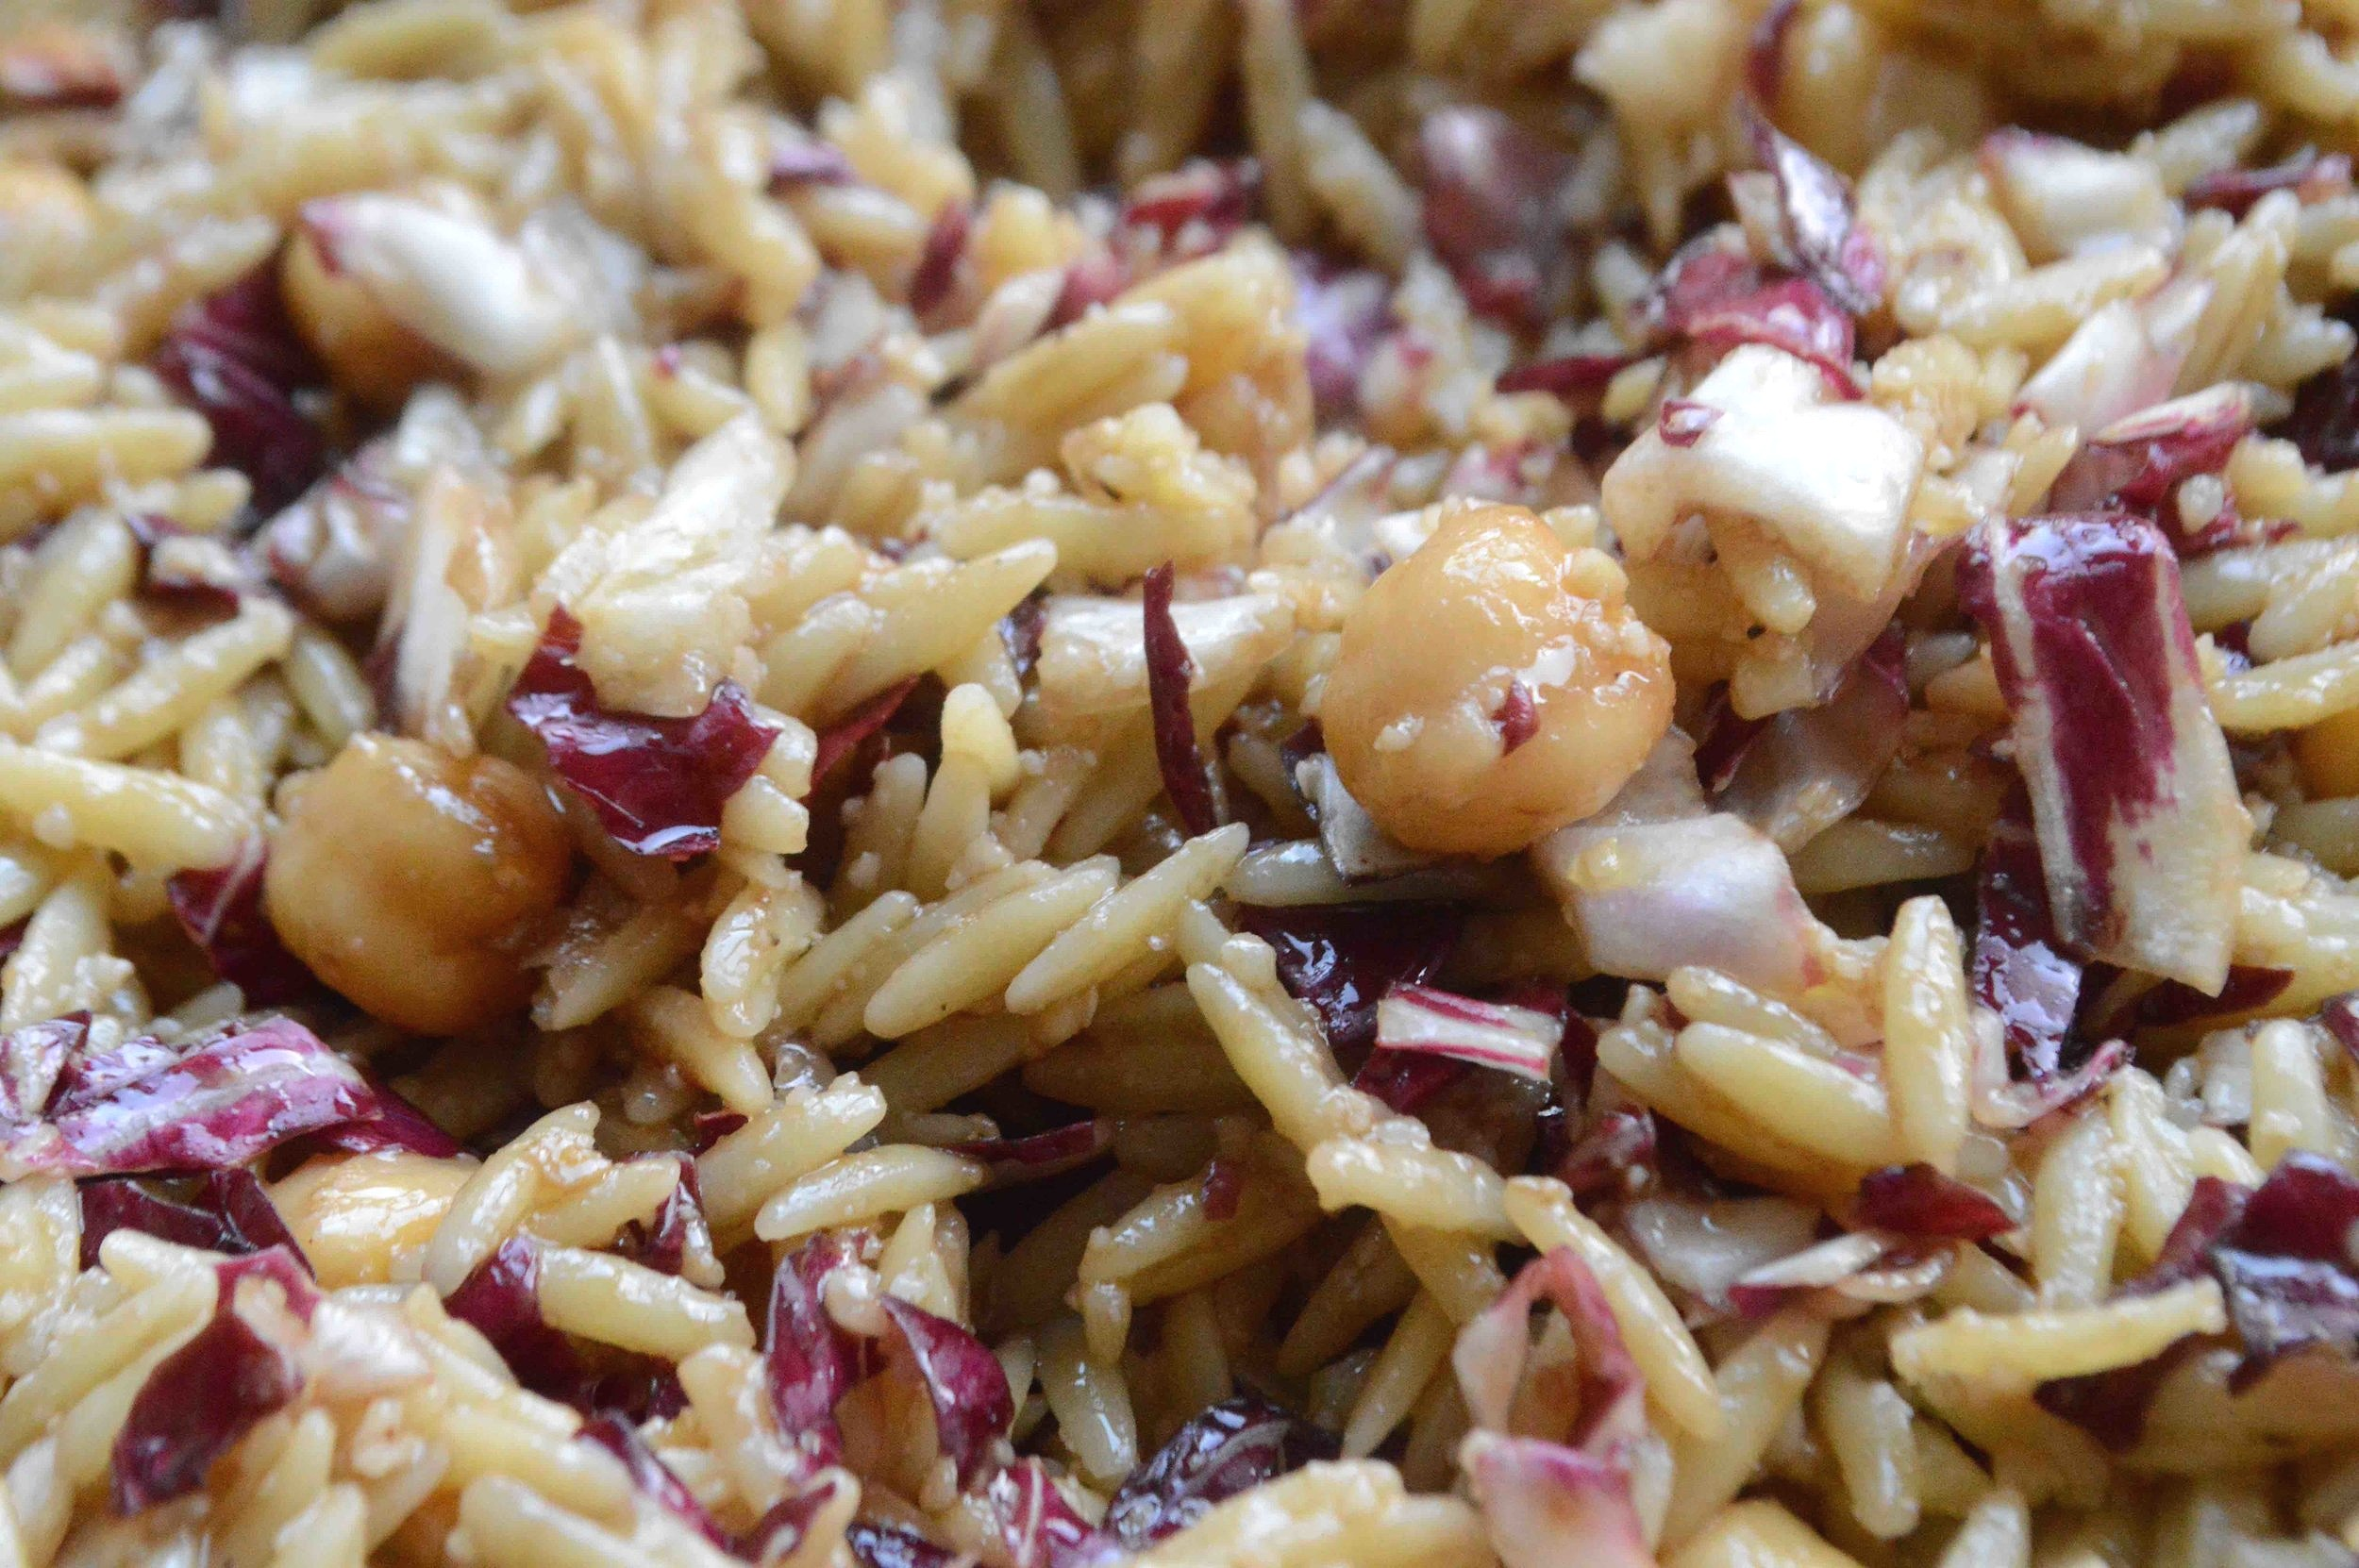 Orzo%2C+Chickpea+and+Radicchio+Salad